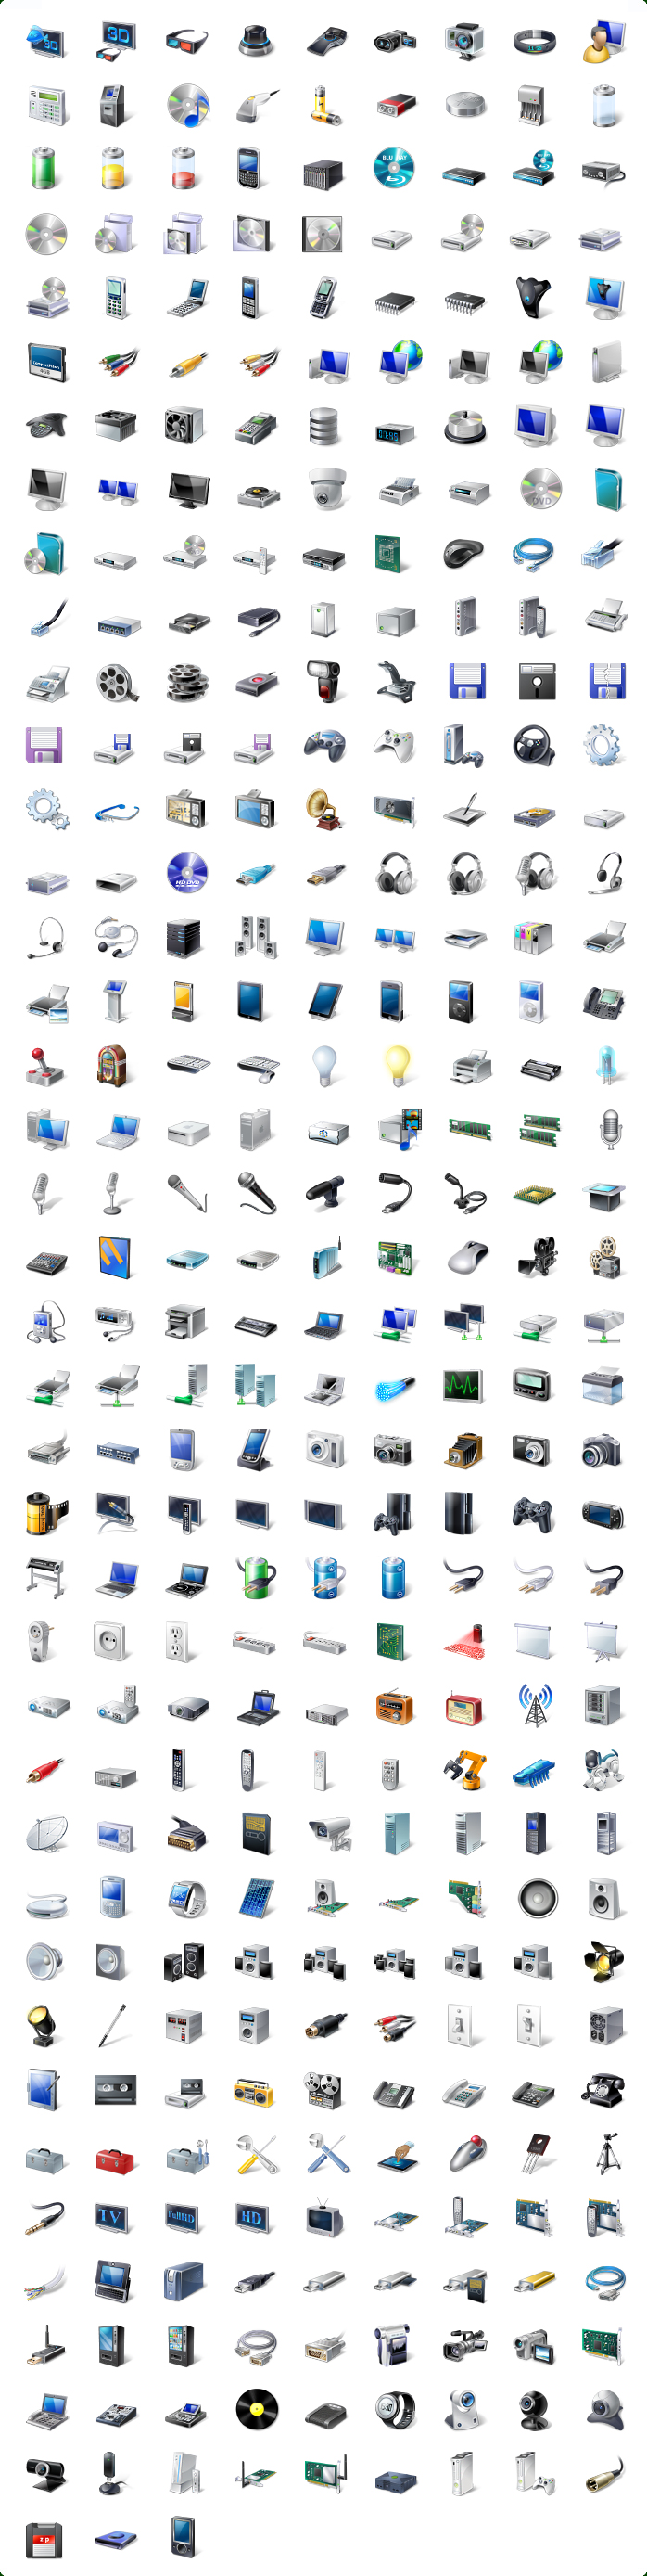 Vista Style Hardware & Devices Icon Set Screenshot